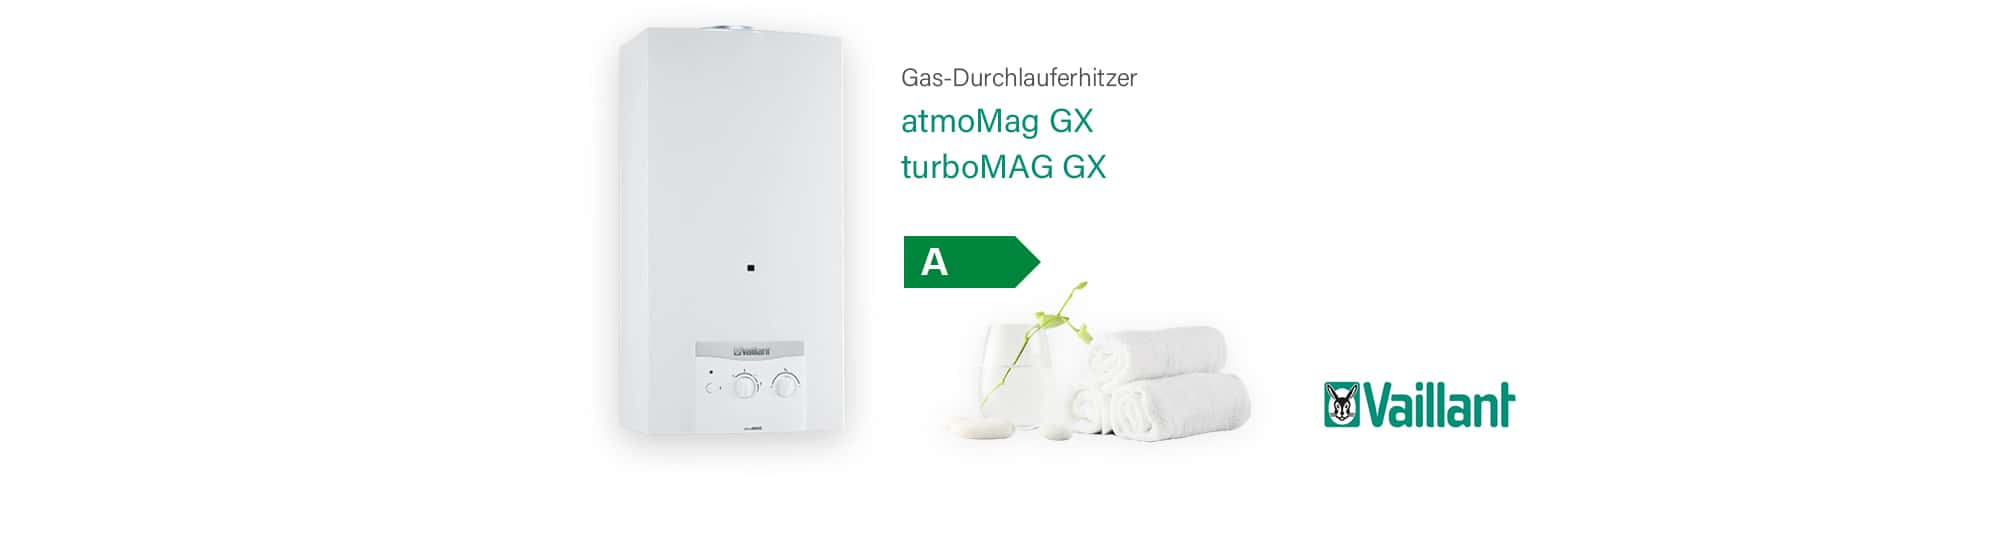 Vaillant atmoMAG & turboMAG Durchlauferhitzer